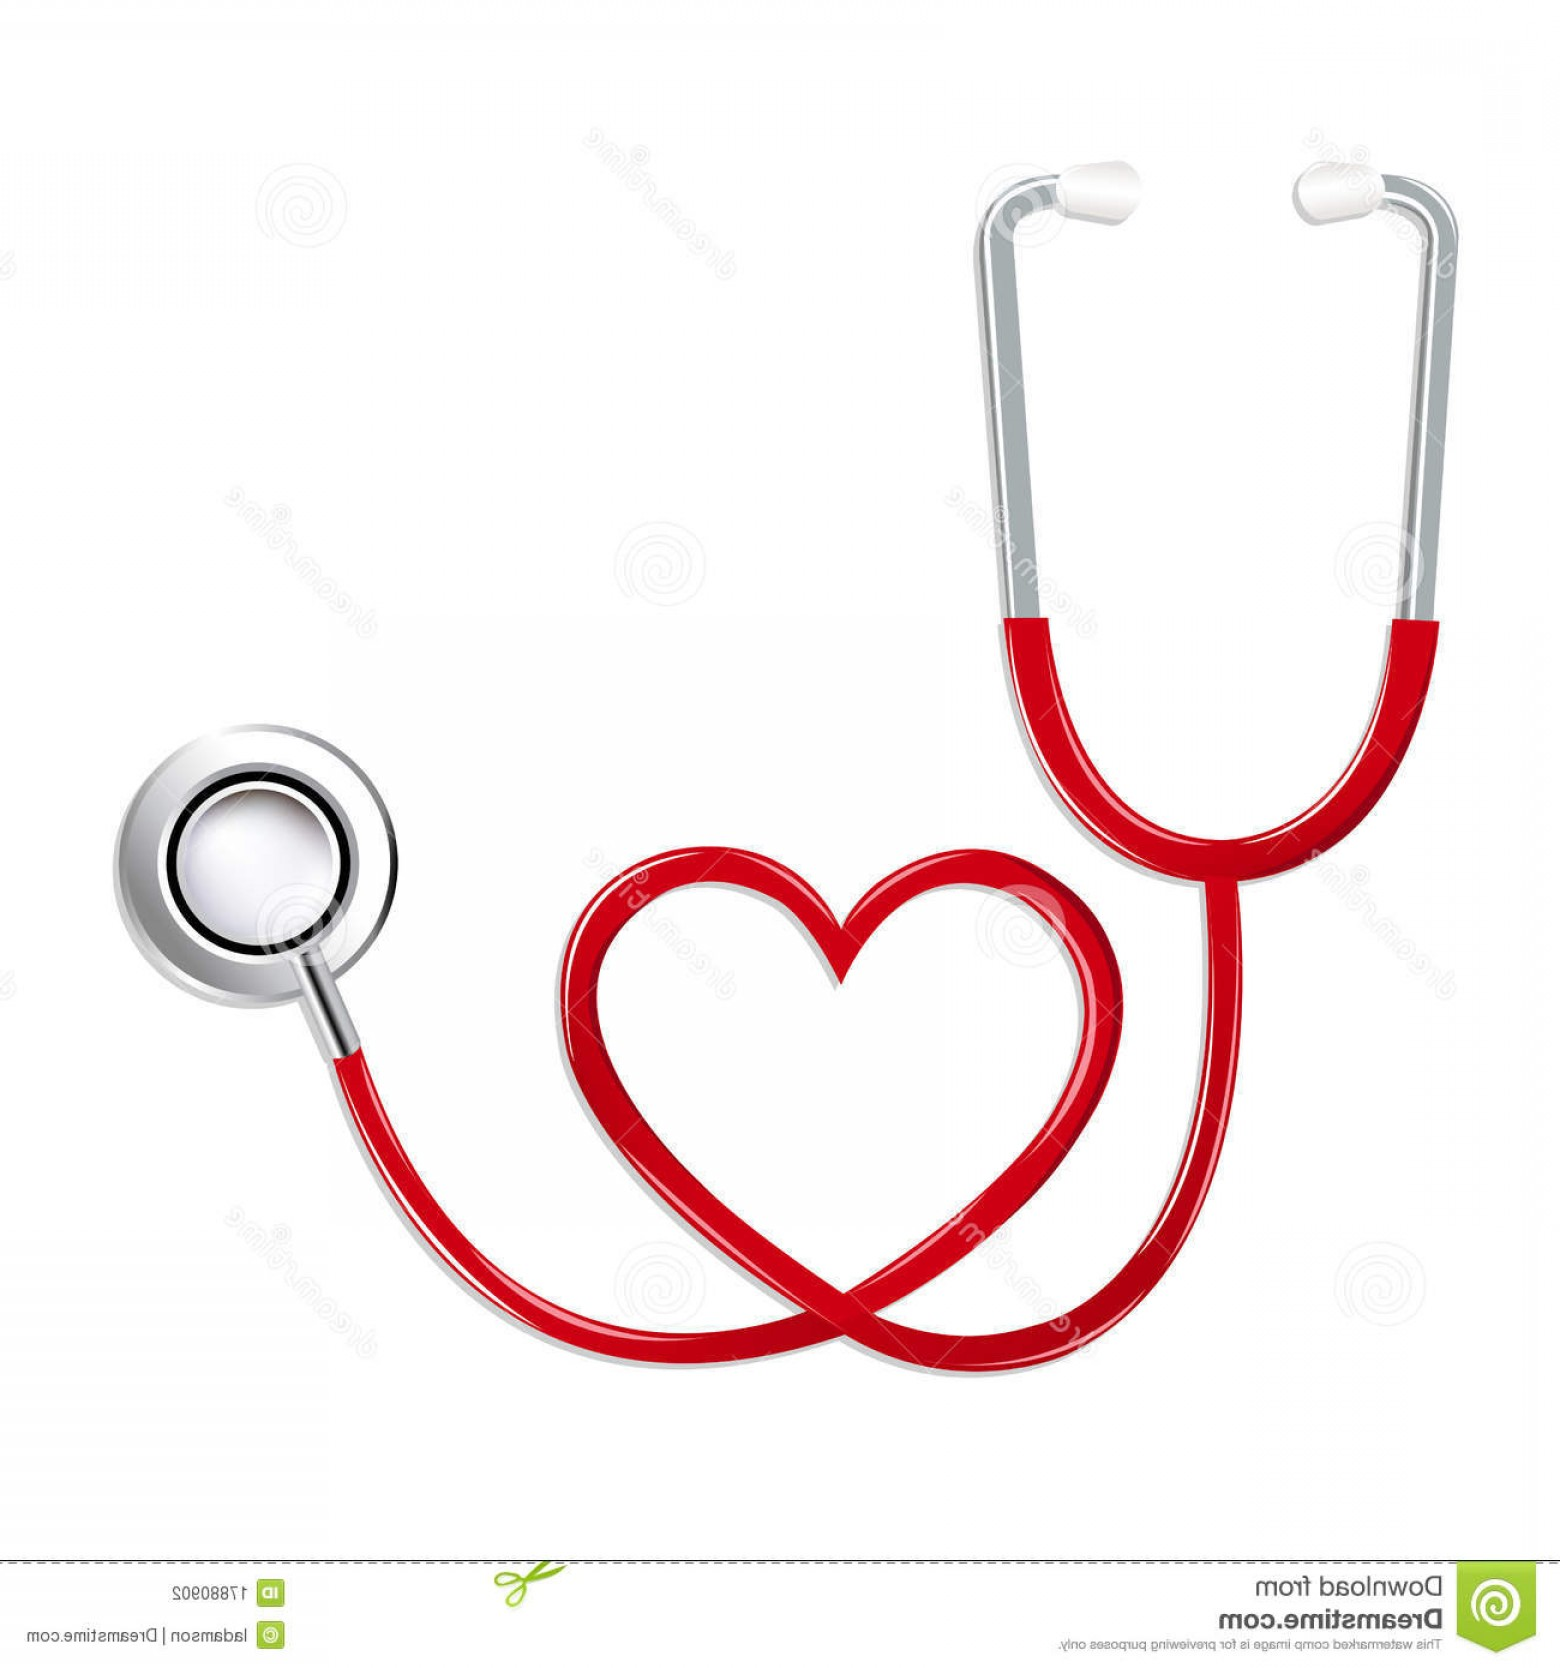 Stethoscope With Heart Vector Art: Stock Photography Stethoscope Shape Heart Vector Image